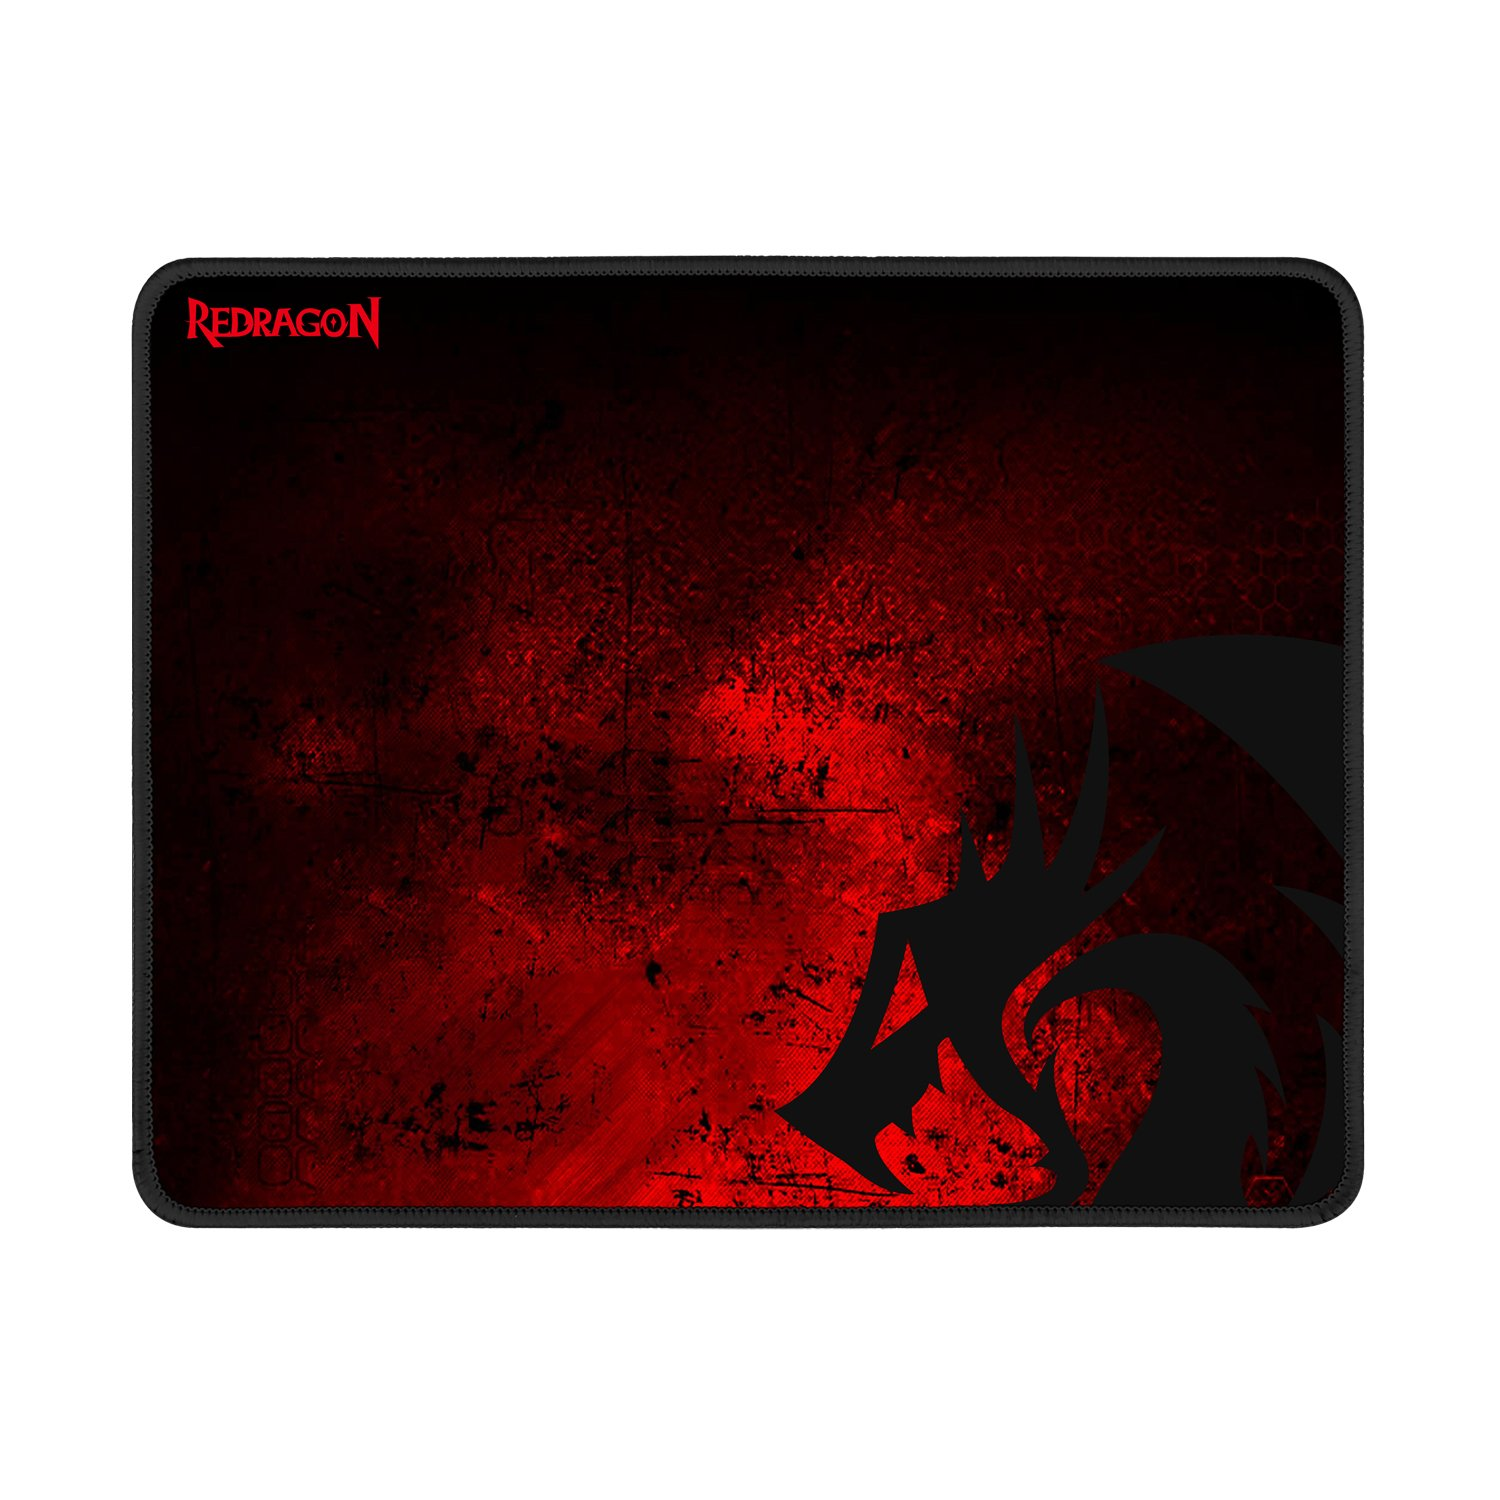 Redragon M601-BA Gaming Mouse and Mouse Pad Combo, Ergonomic Wired MMO 6 Button Mouse, 3200 DPI, Red LED Backlit Large Mouse Pad for Windows PC Gamer Black Wired Mouse Mousepad Set